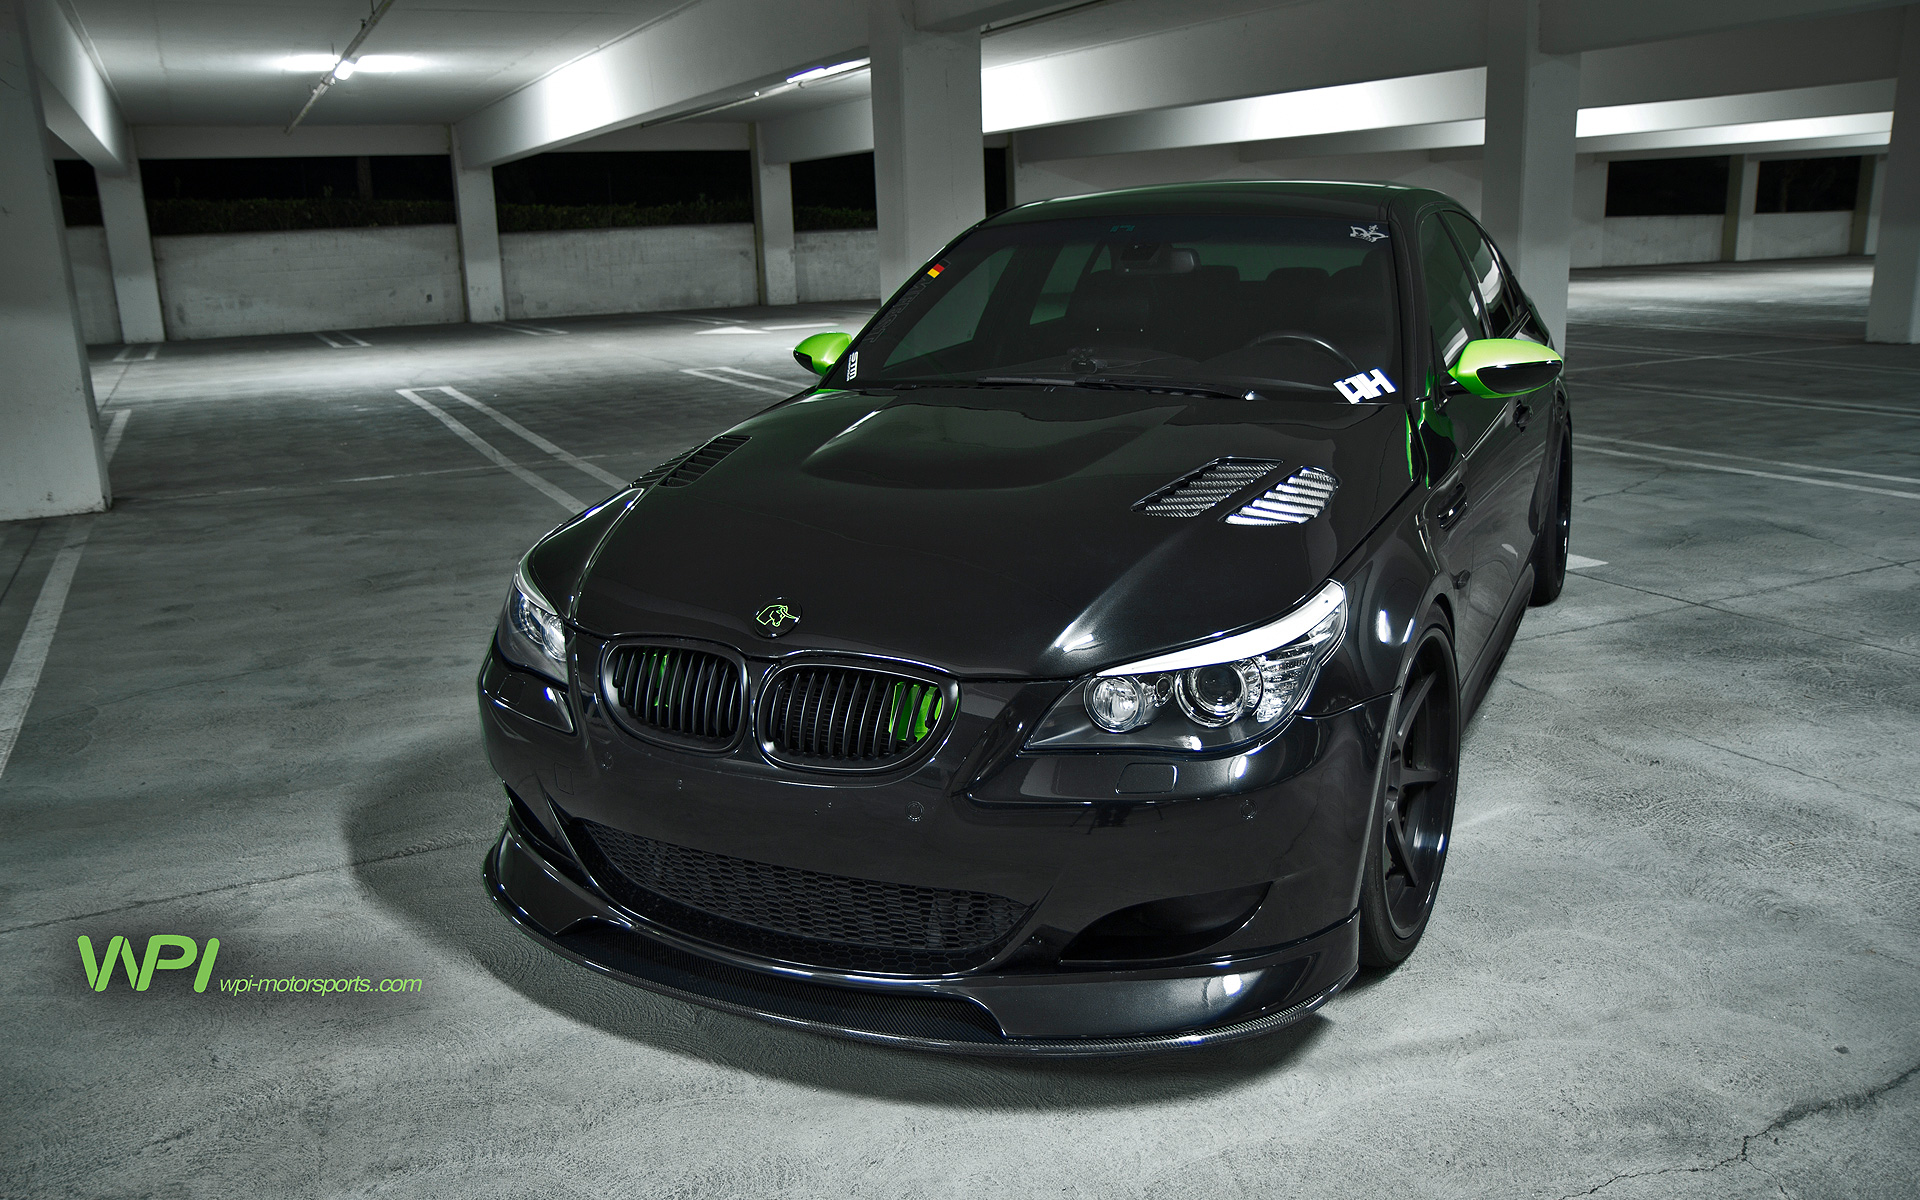 BMW E60 M5 Modded Wallpaper HD Car Wallpapers ID 2542 1920x1200